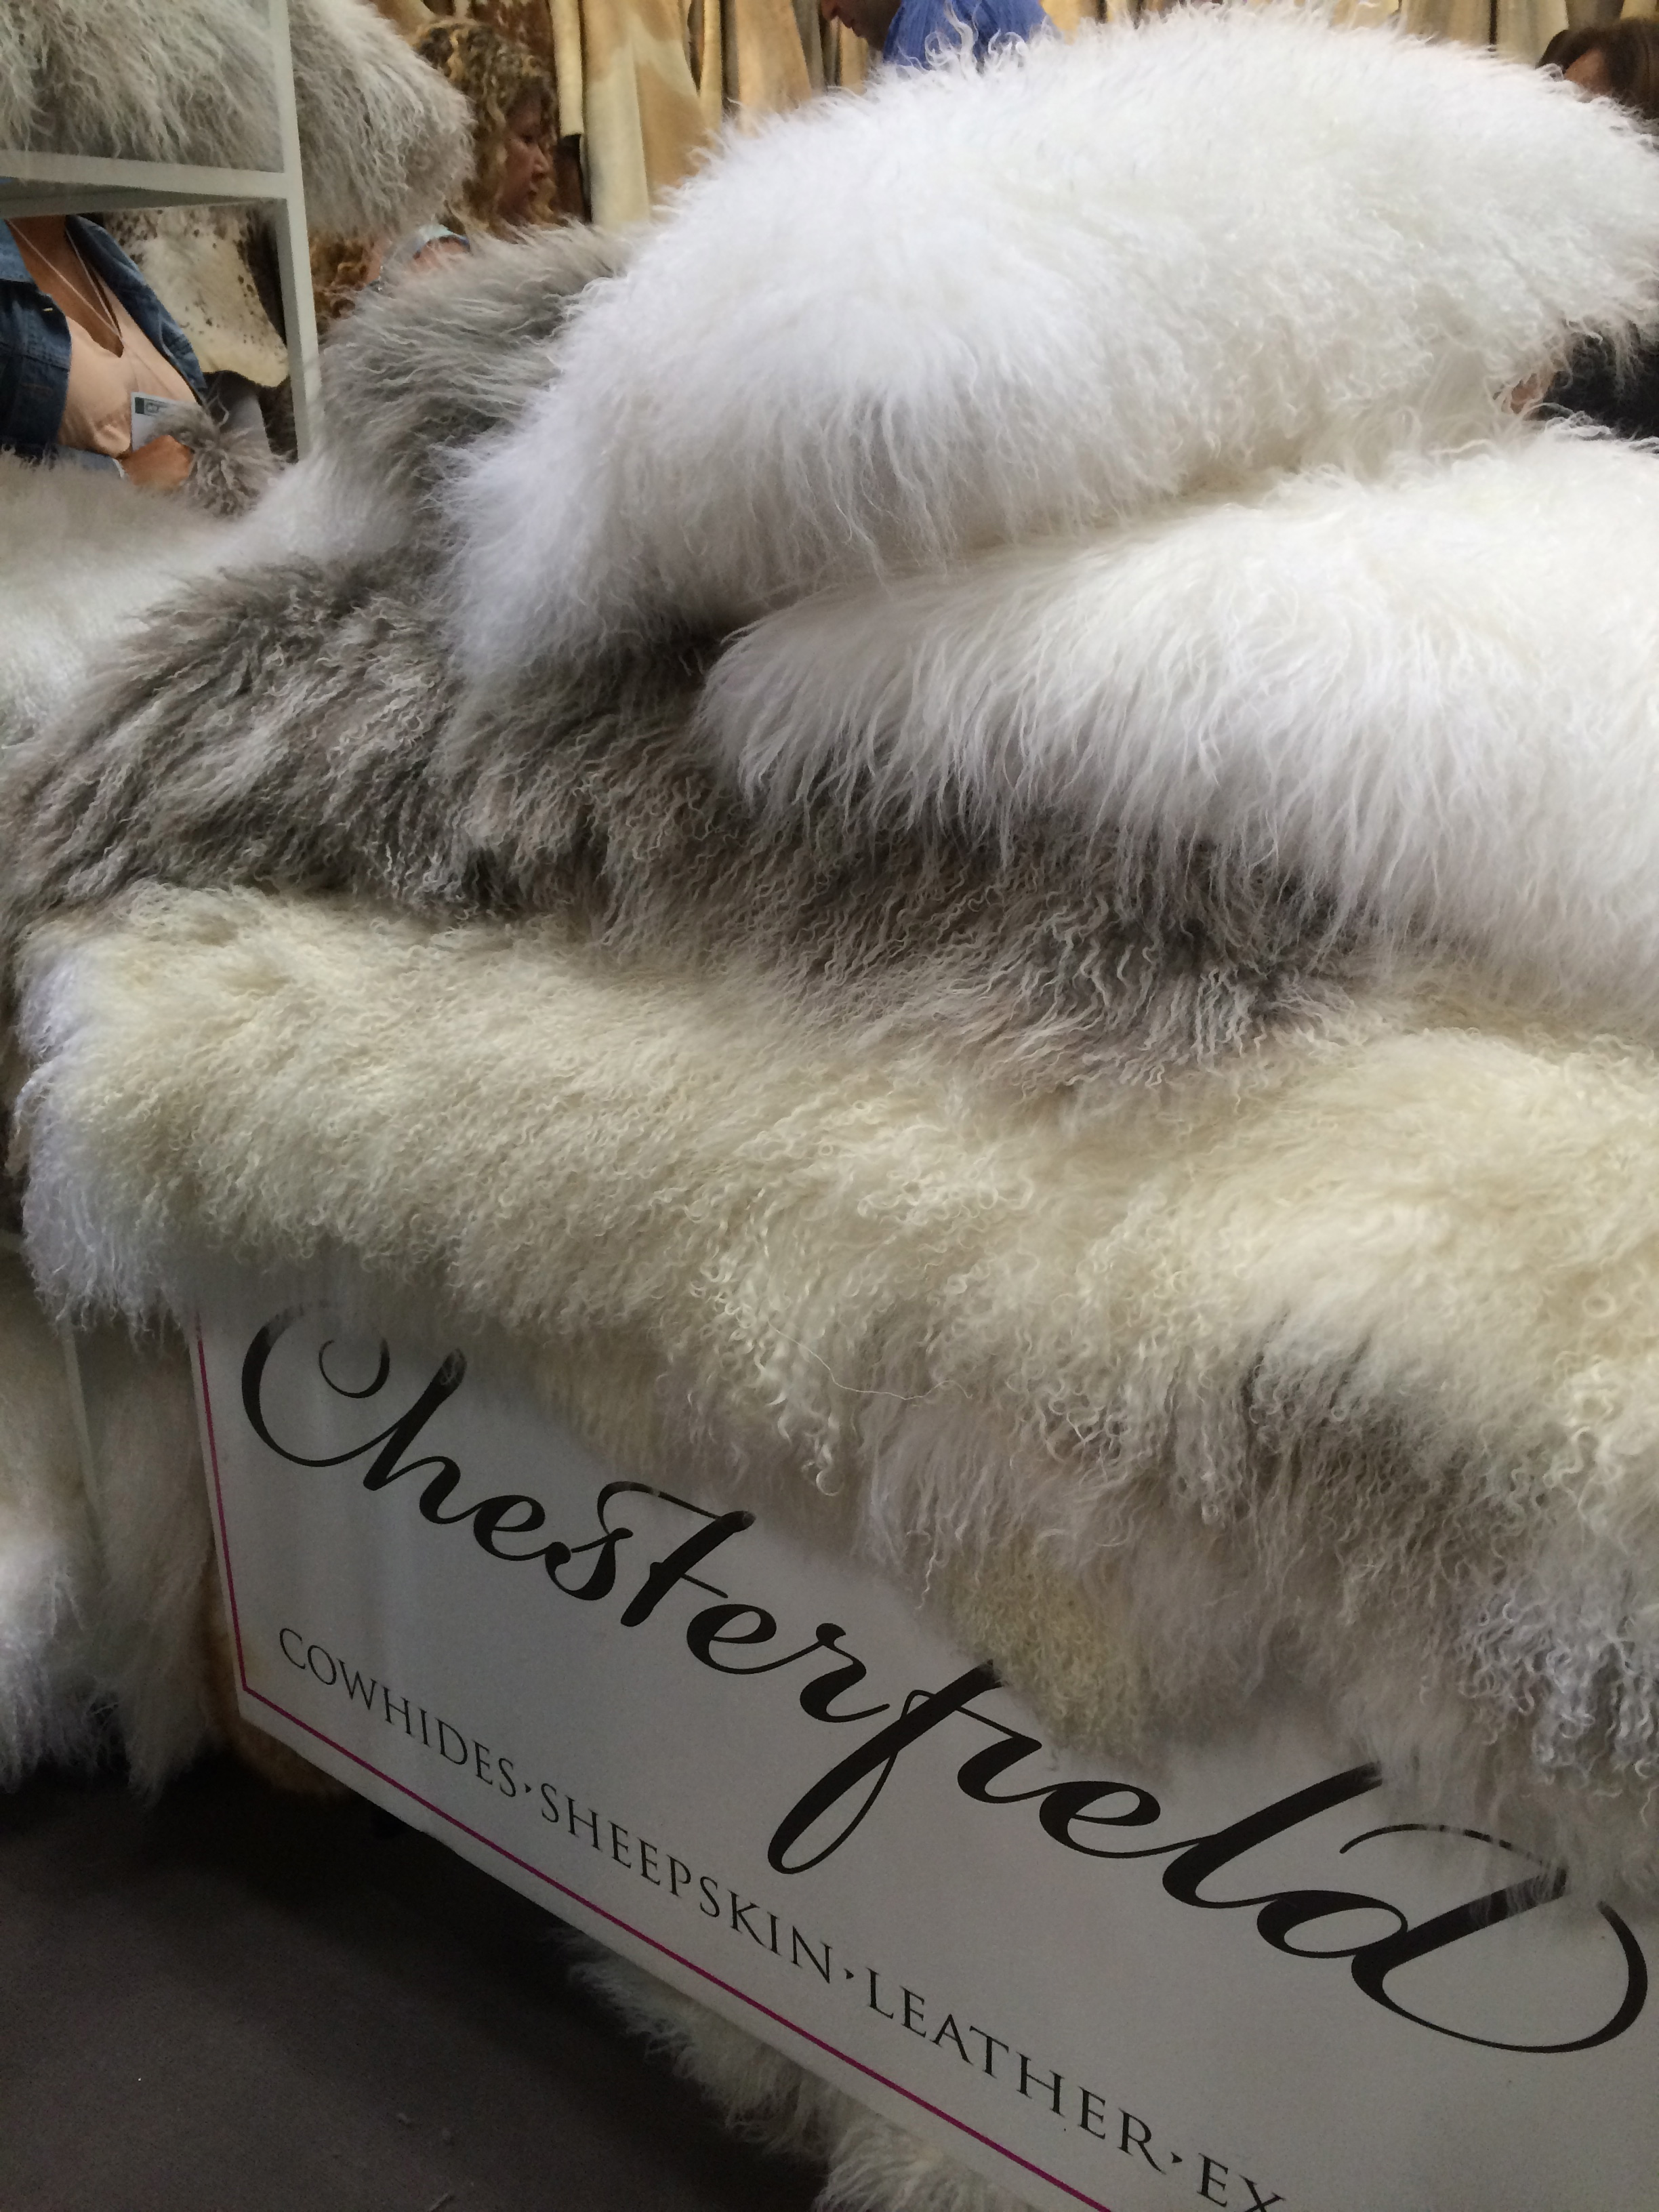 Fuax sheepskin is a strong design trend